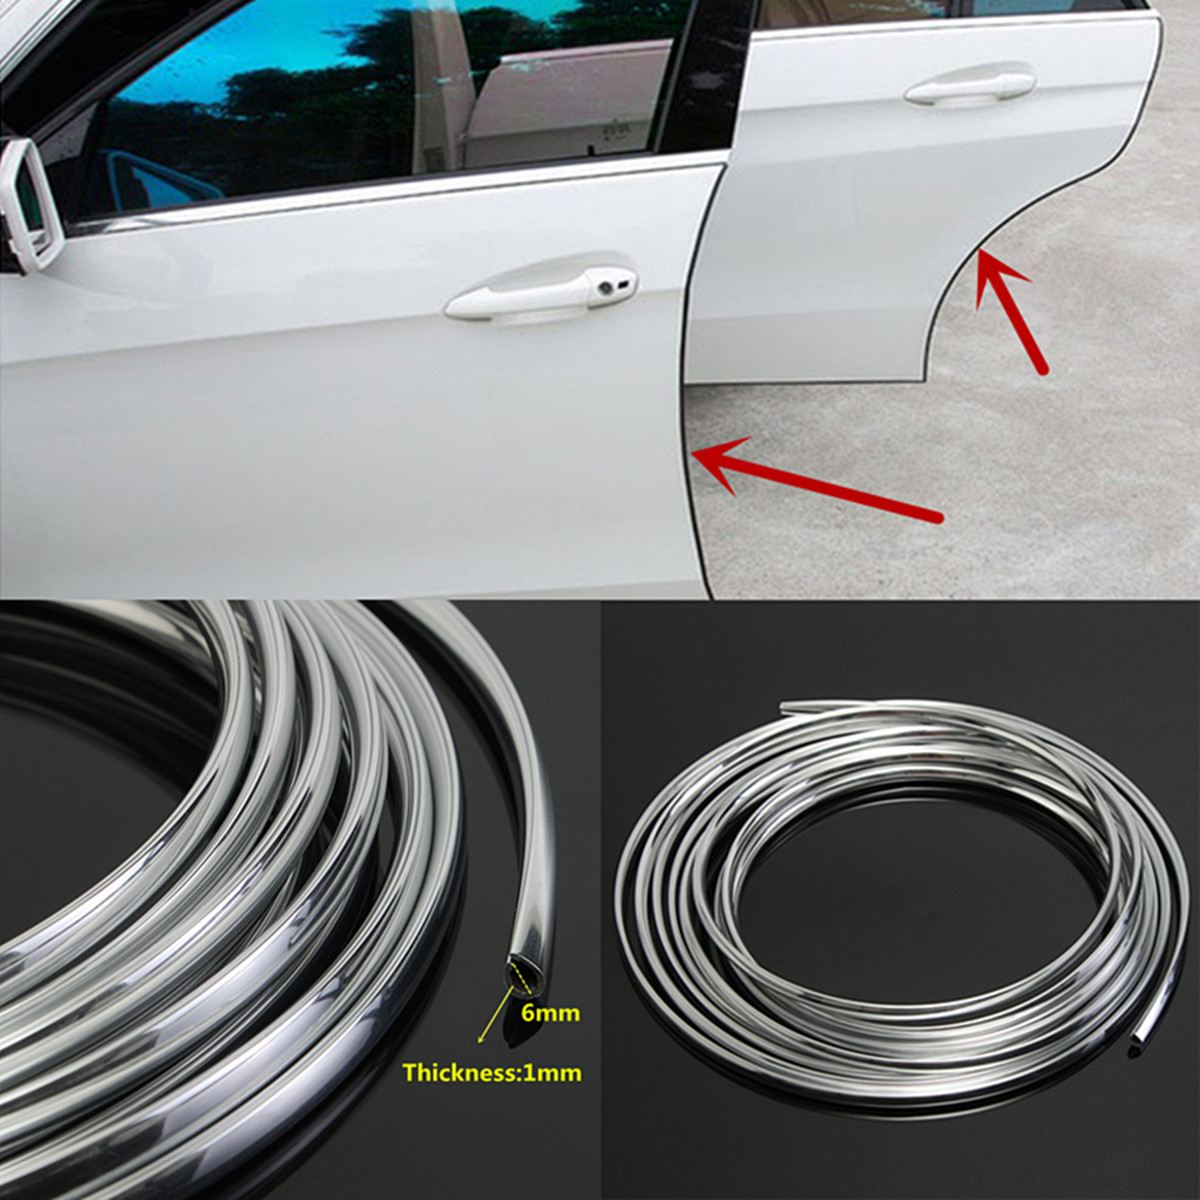 5M Car Door Edge Guards Trim Rubber Seal Protector Guard Strip Car Protection Door Edge Fit for Most Car(Transparent) TURN RAISE 16Ft